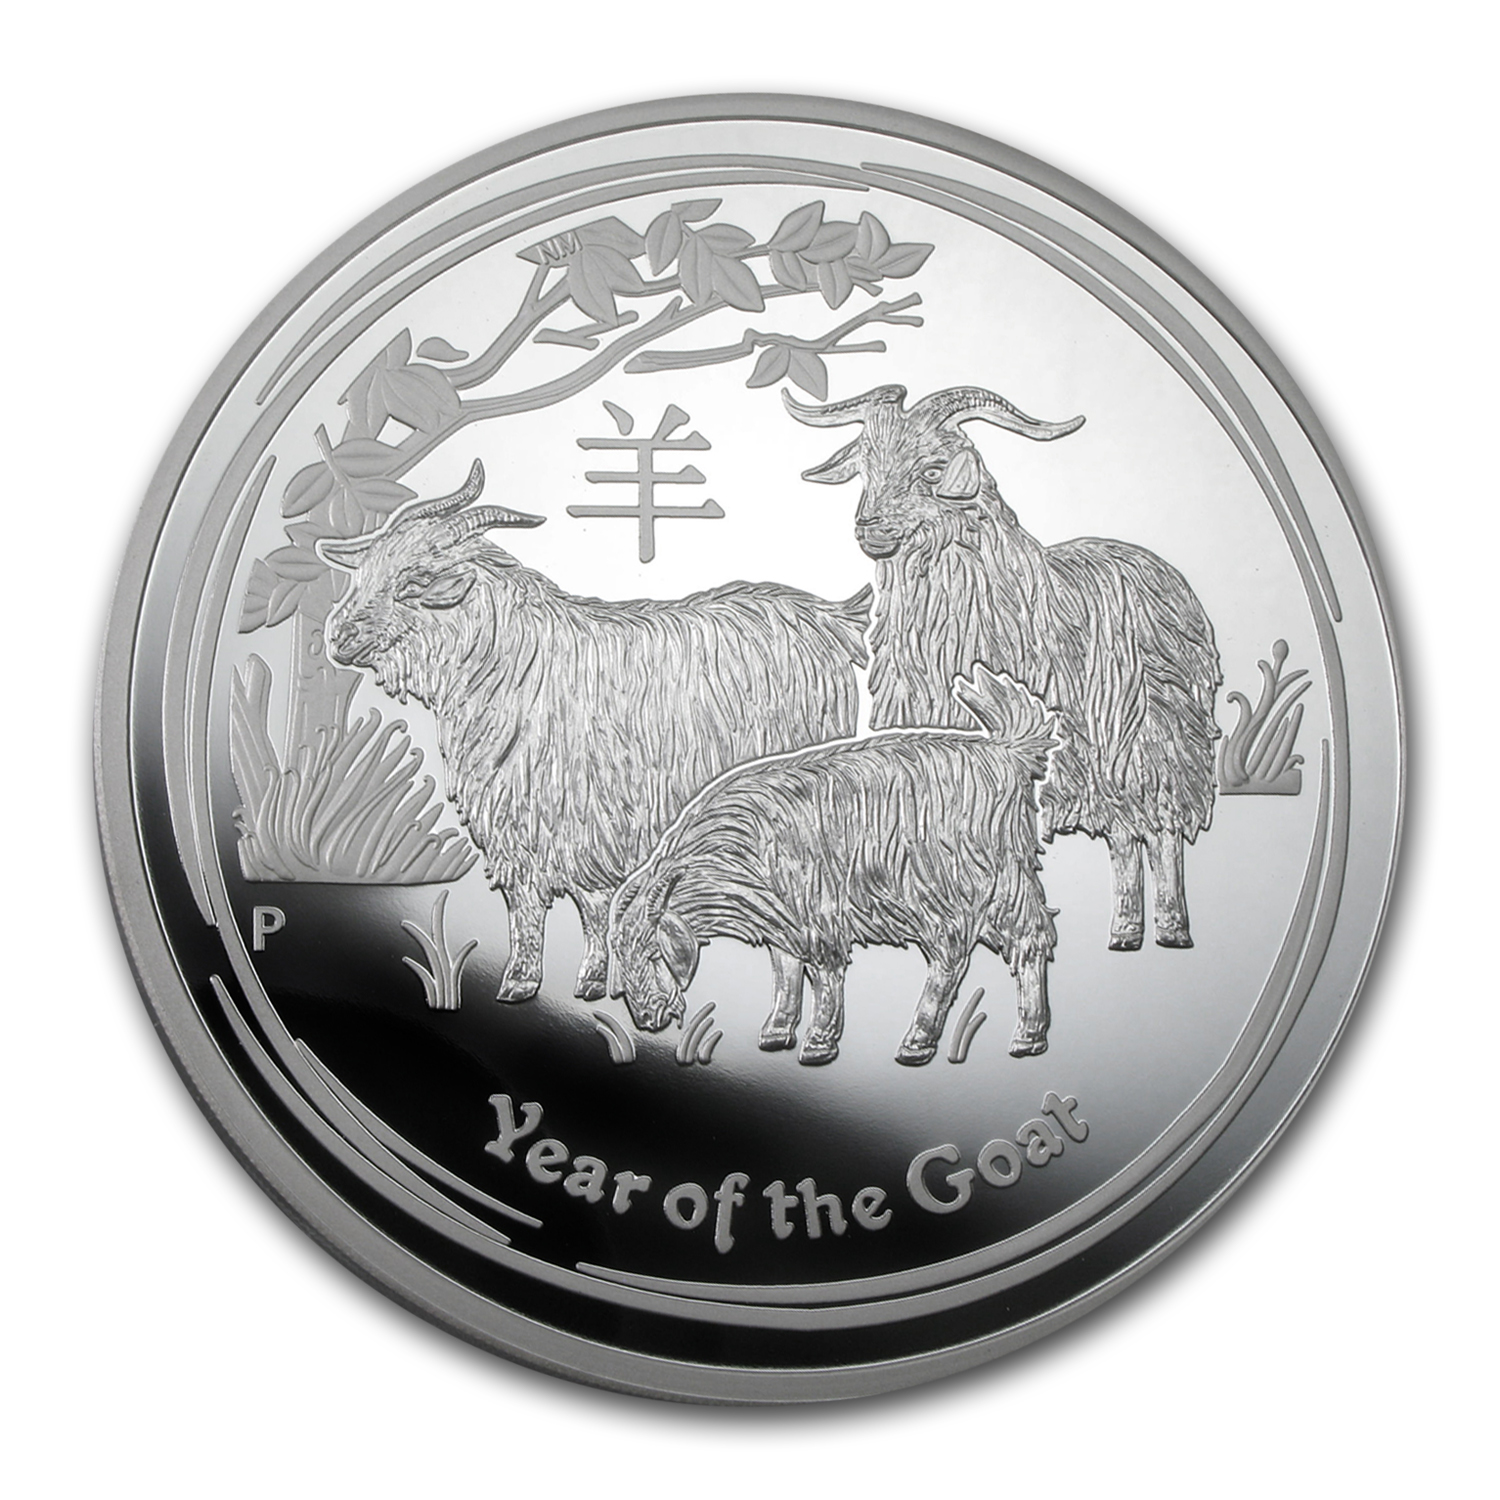 2015 1 Kilo Year of the Goat Silver Coin Proof